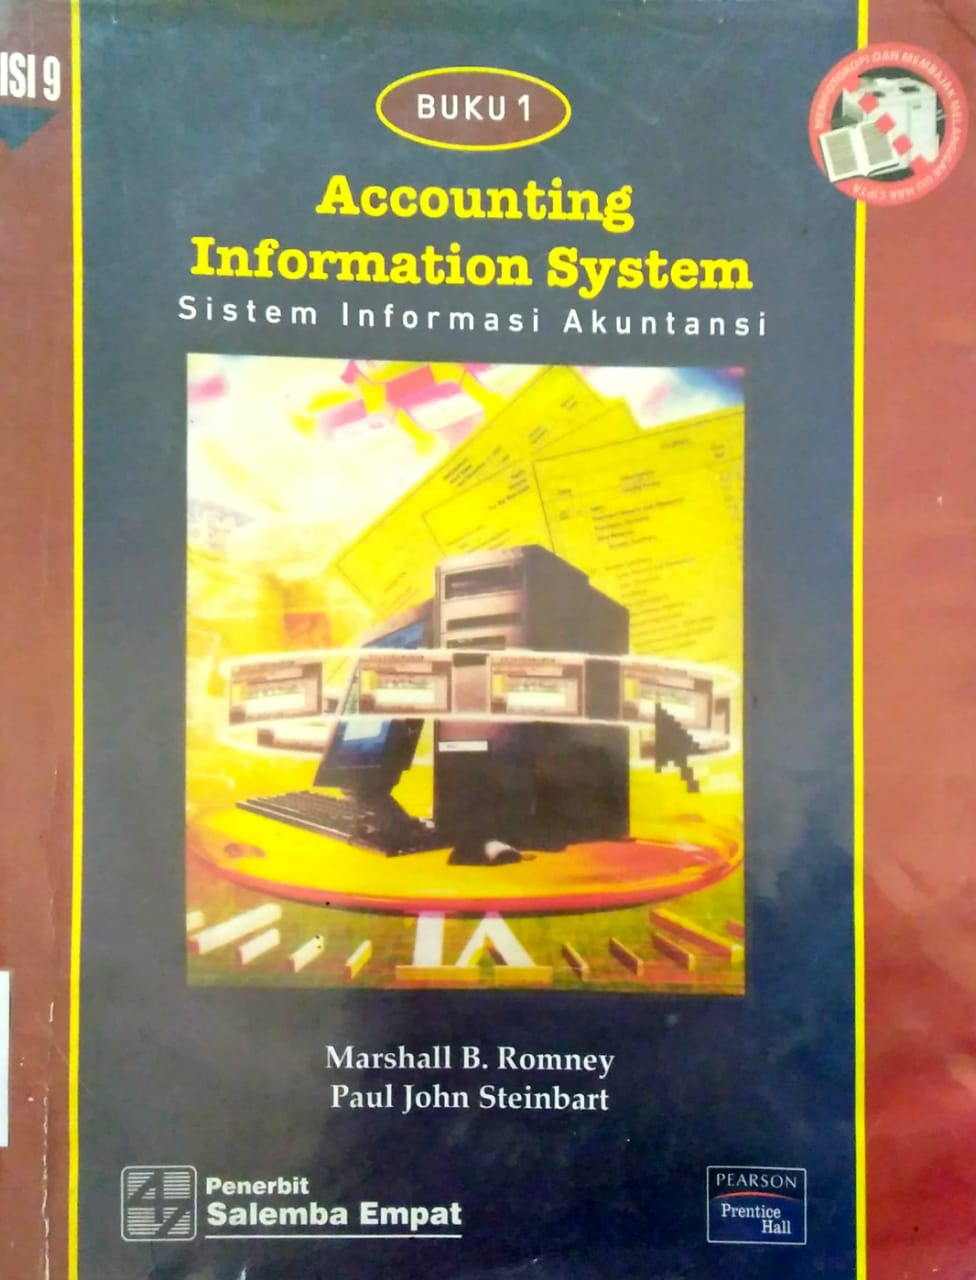 Accounting Information System buku 1